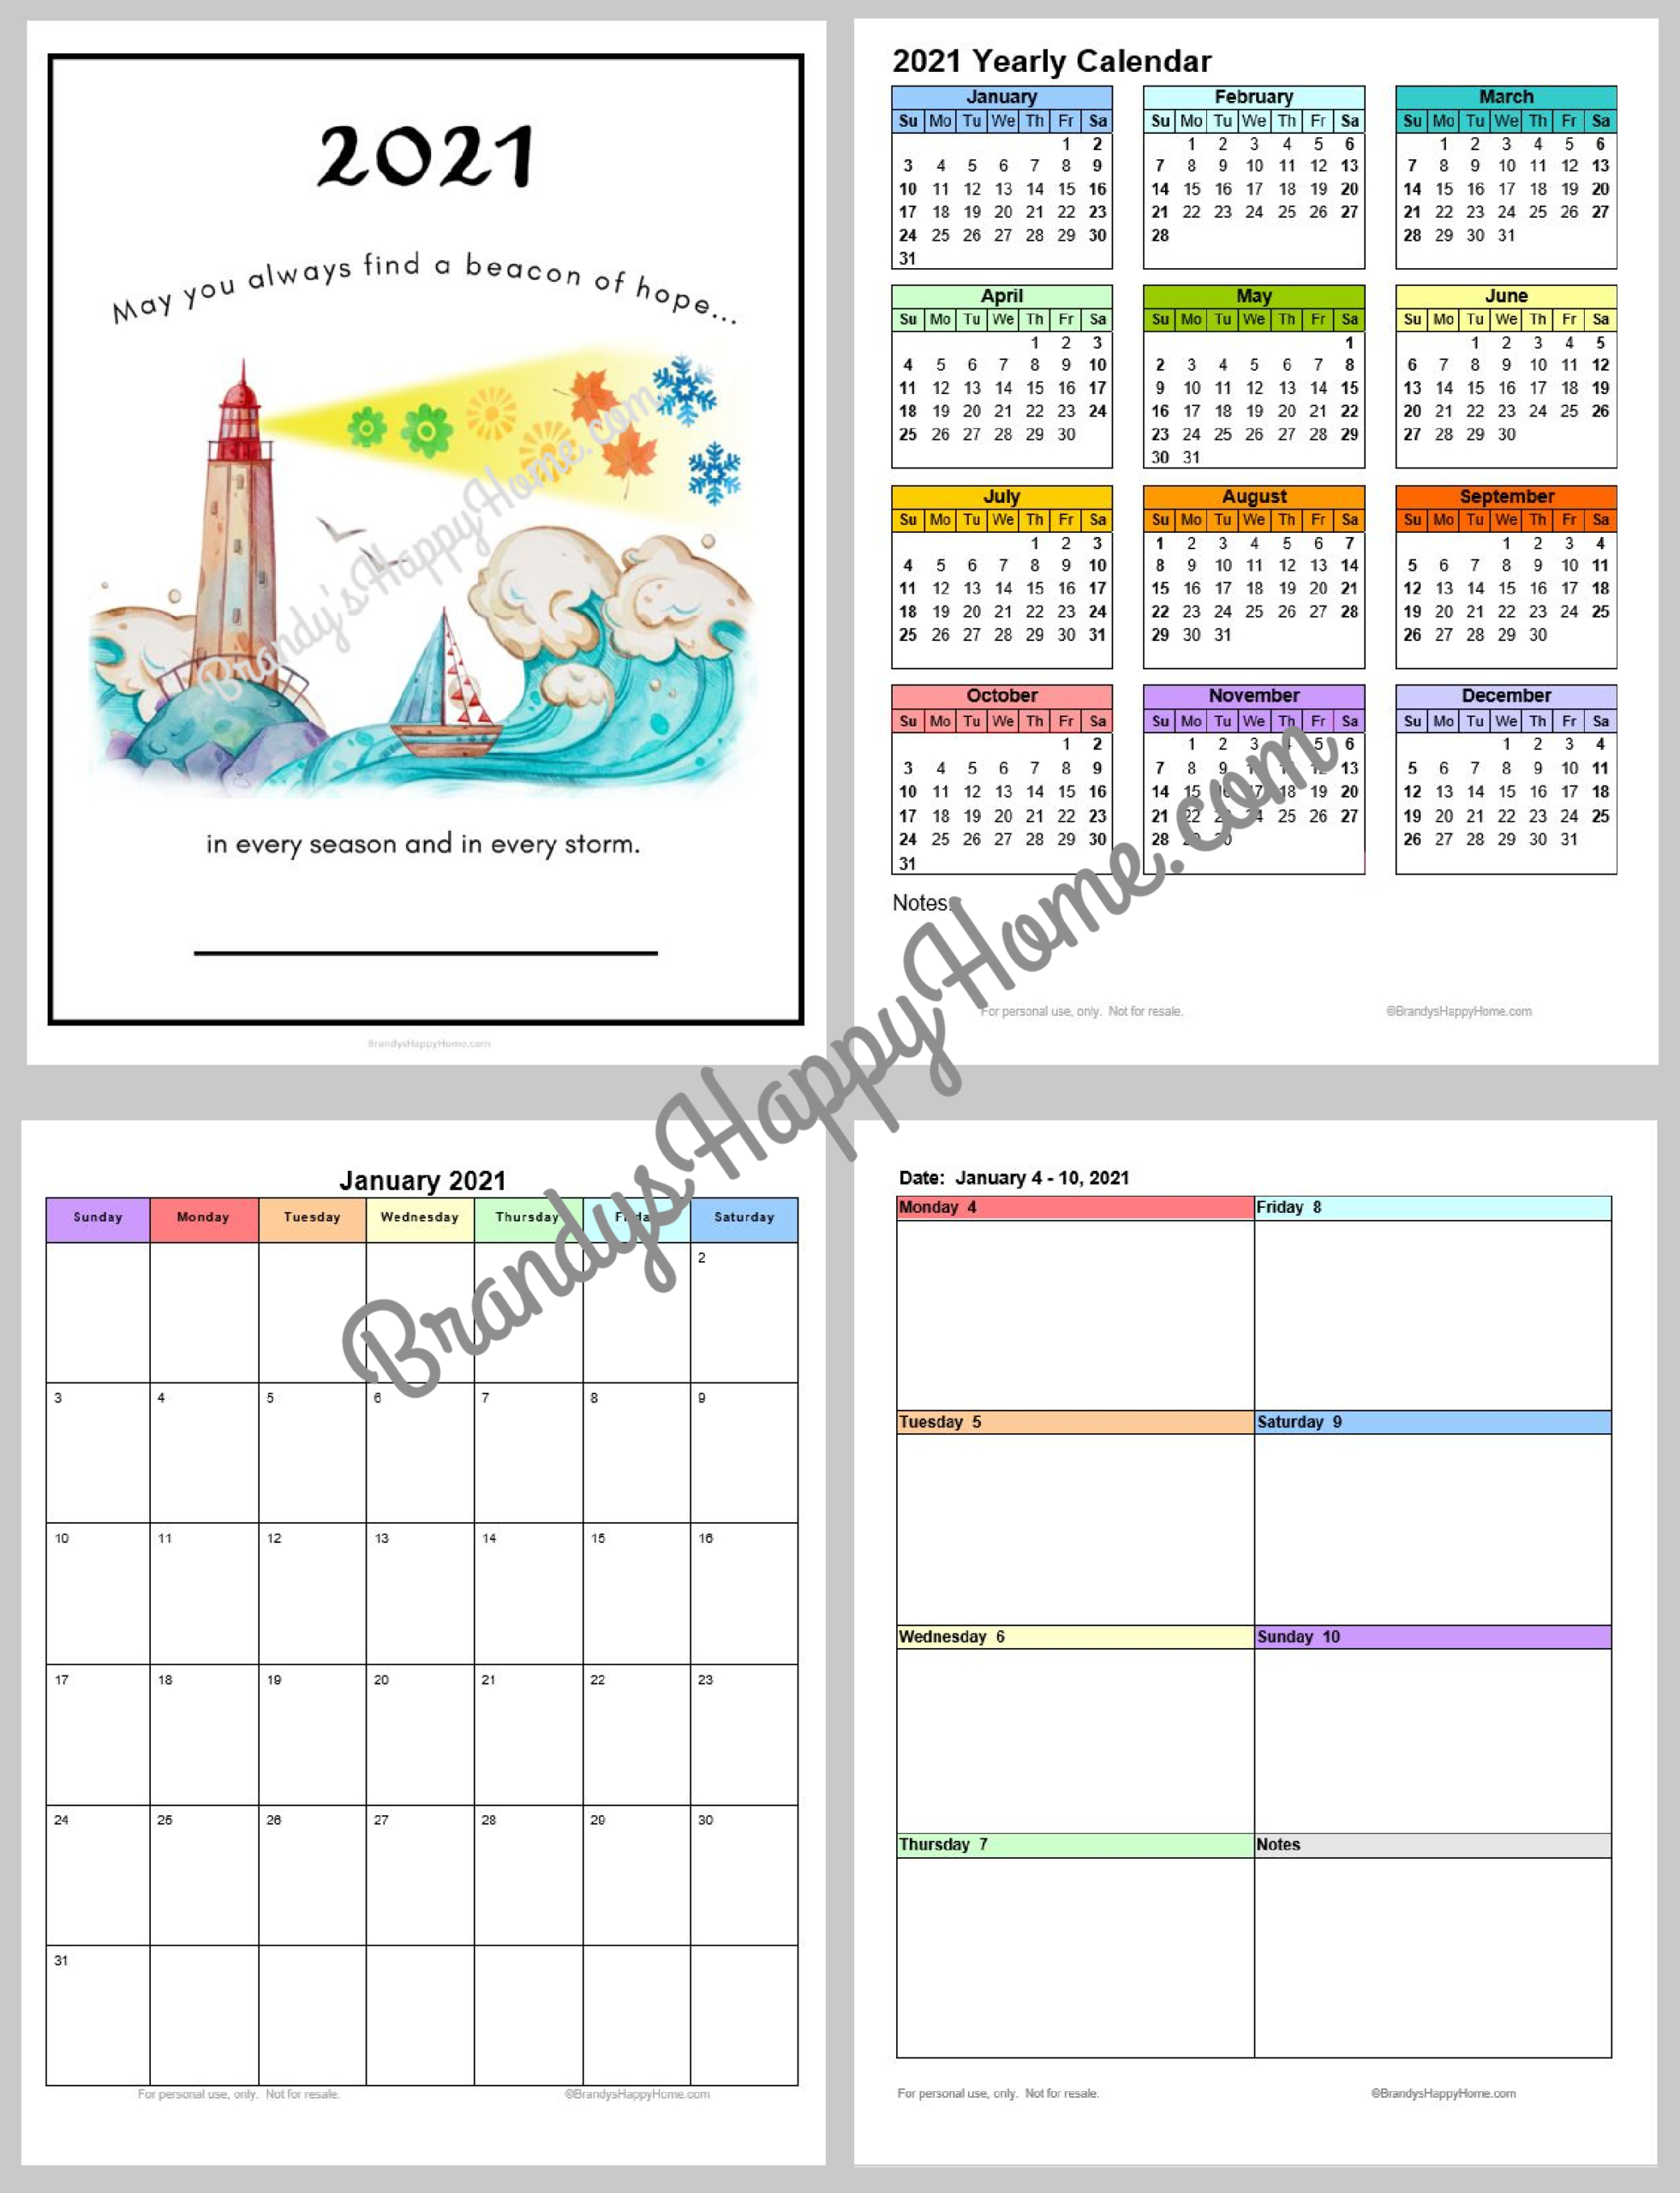 Free 2021 Calendar Planner Printables intended for 2021-2021 2 Year Pocket Planner: 2 Year